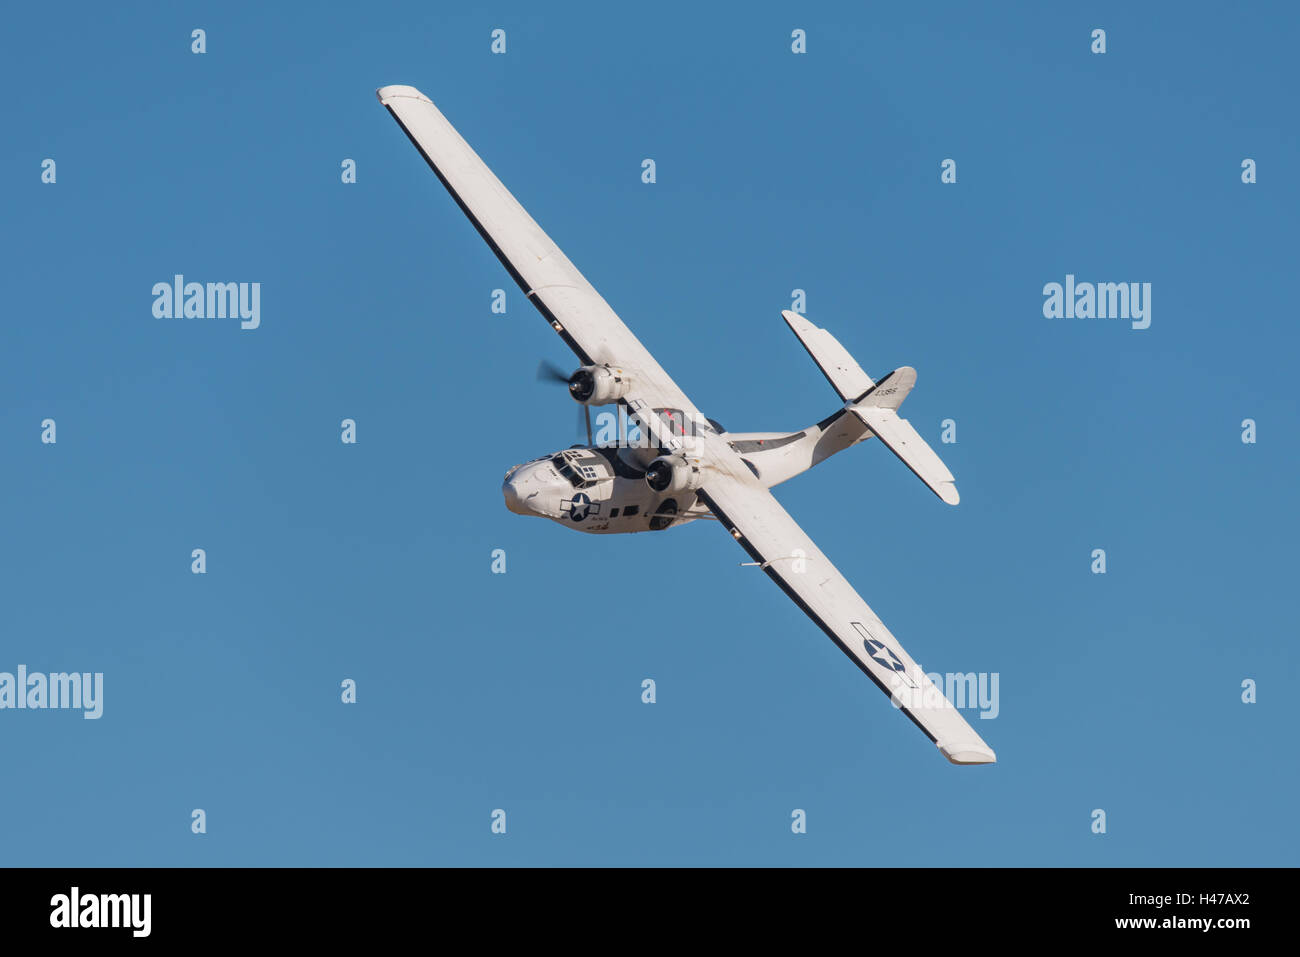 Consolidated PBY-5A Catalina seaplane 433915 / G-PBYA 'Miss Pick Up' operated by The Catalina Society (Plane - Stock Image